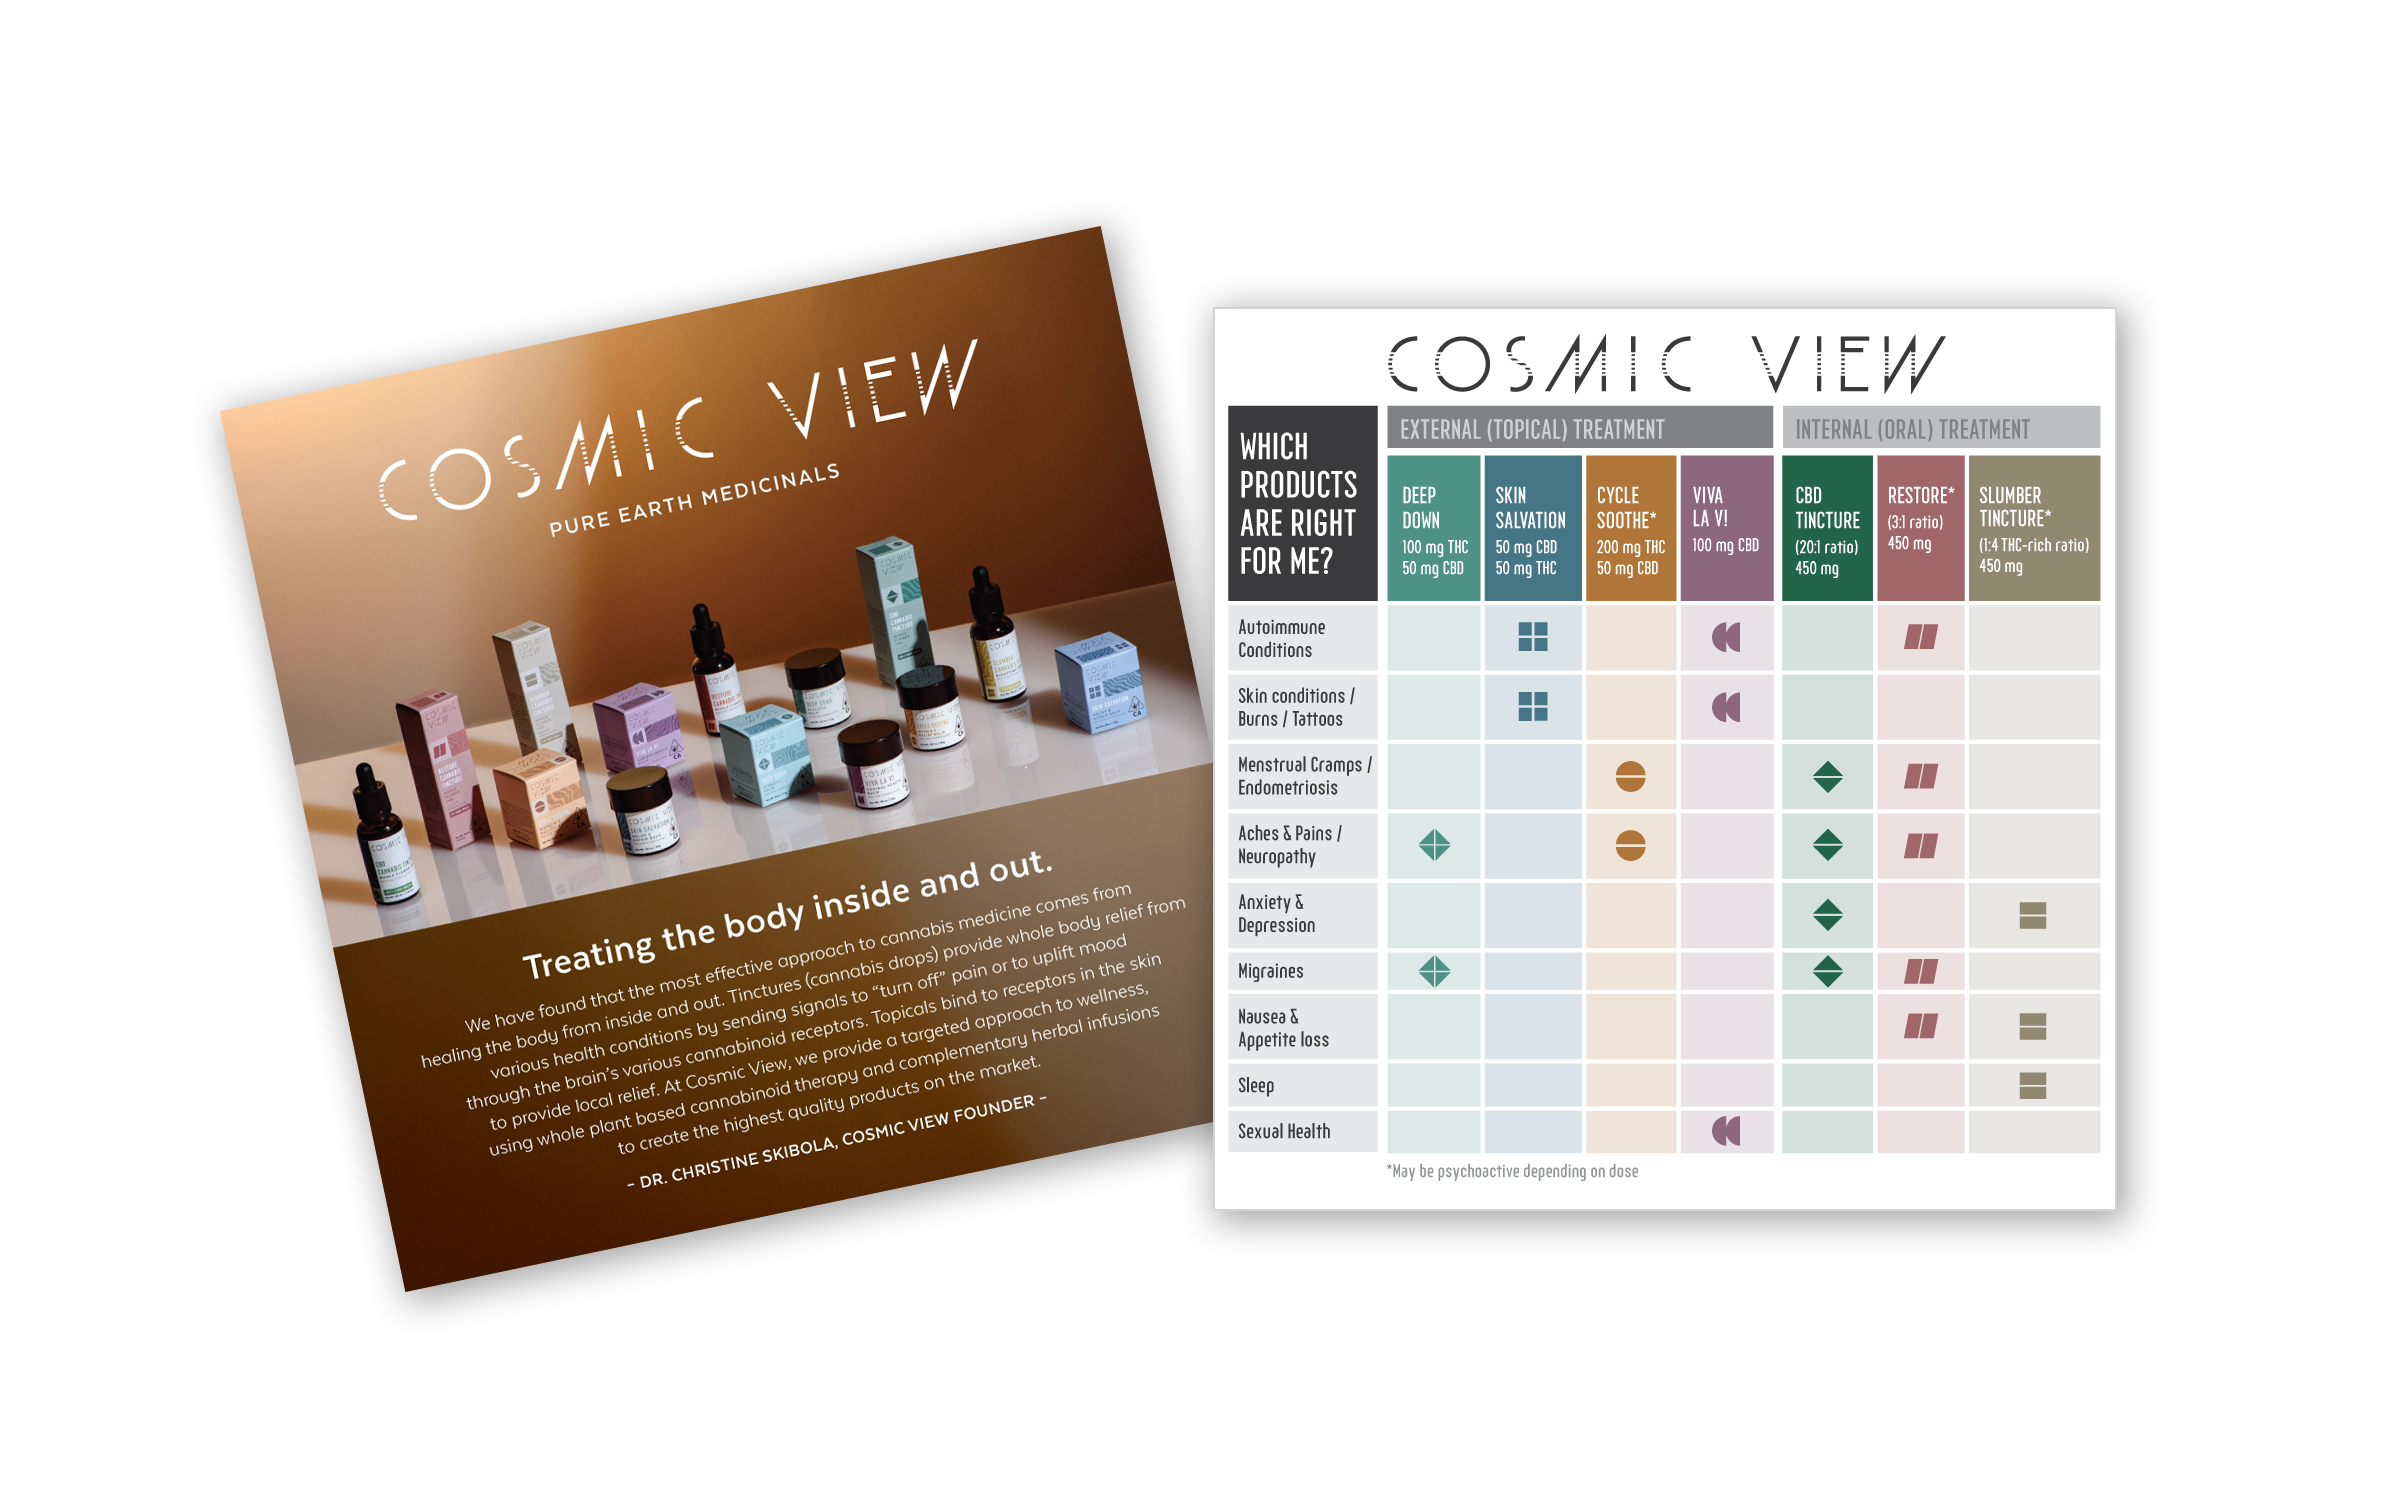 Cosmic View Product Information Card